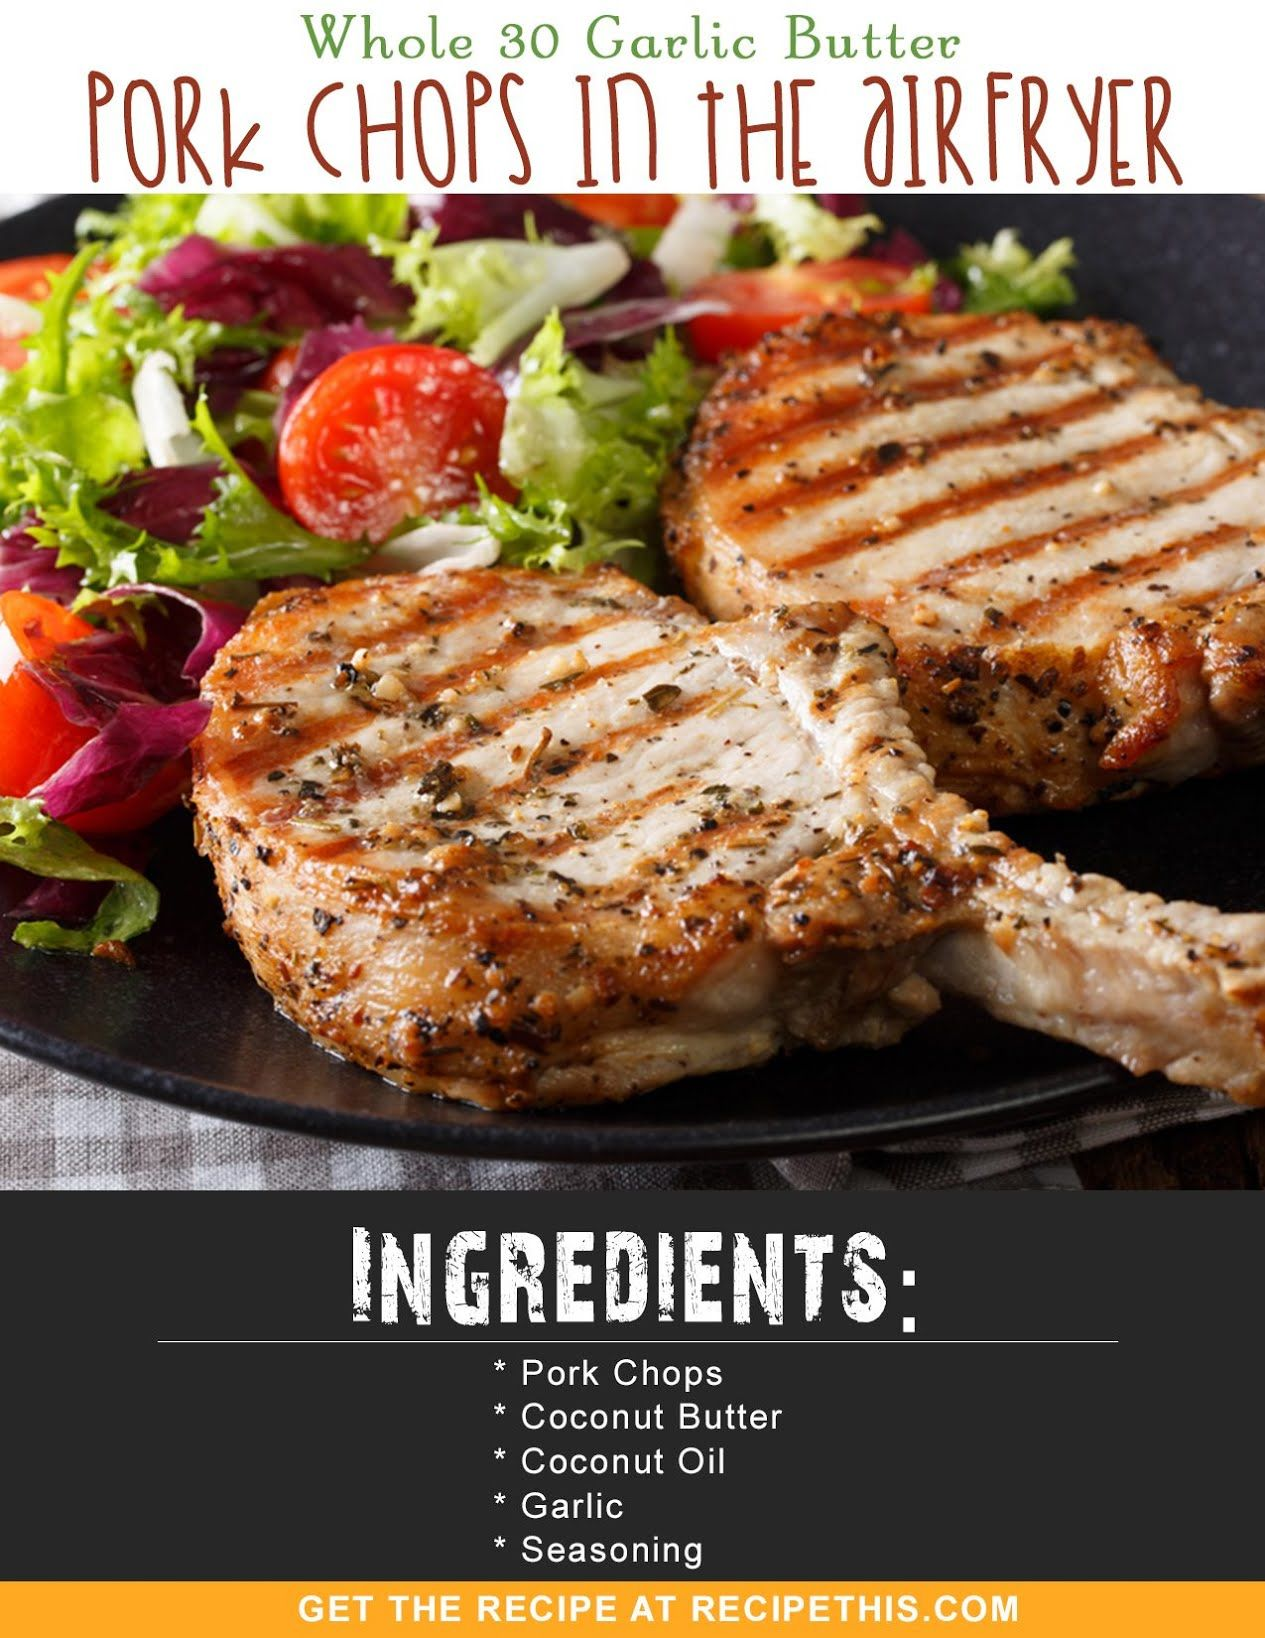 Whole 30 Whole 30 Garlic Butter Pork Chops In The